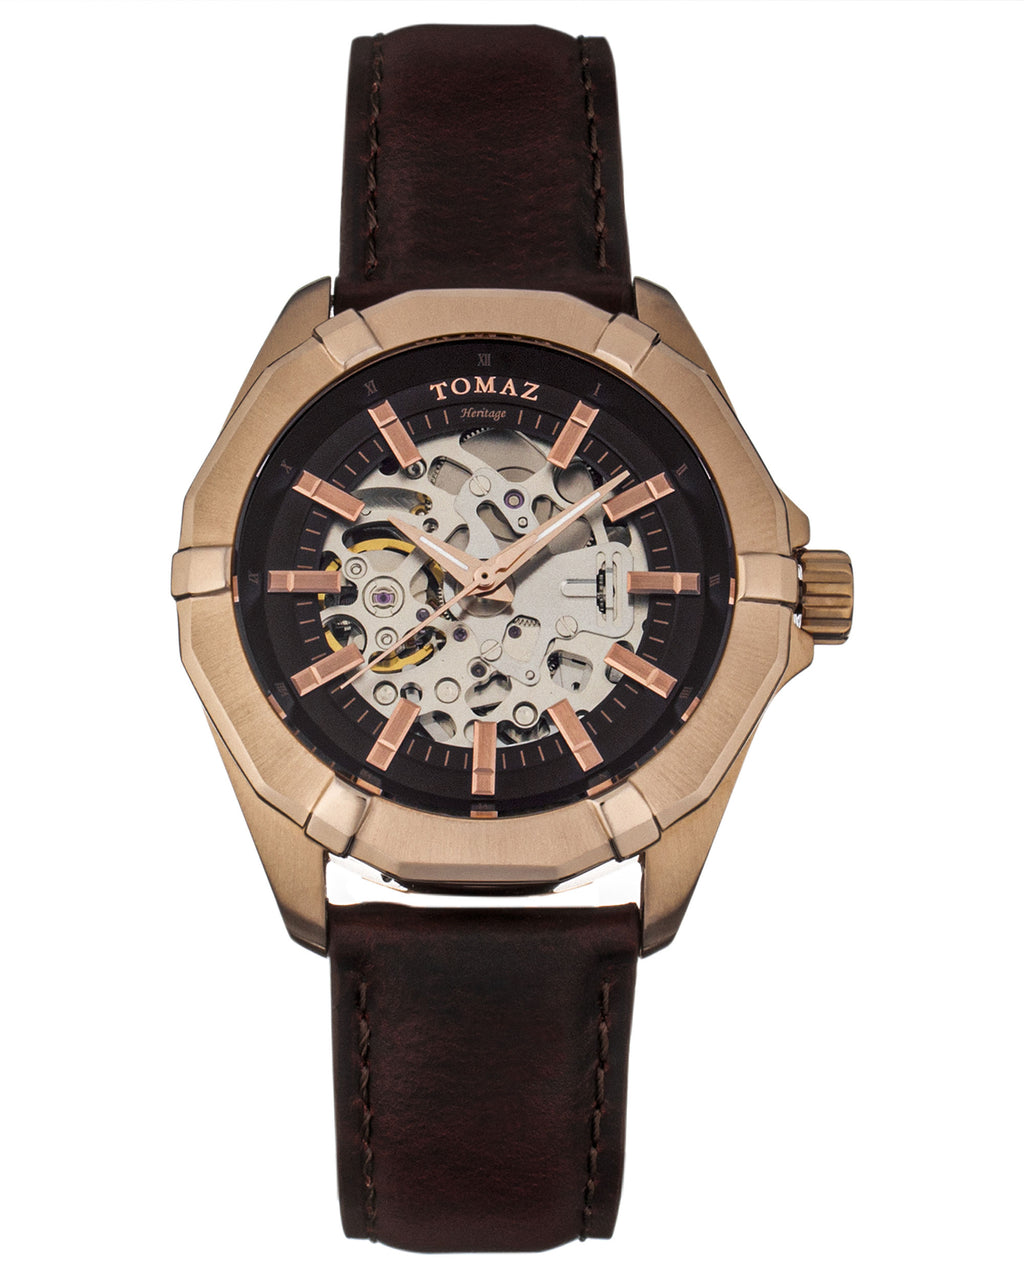 Tomaz Men's Watch TW009B (Brown) -2nd ver.